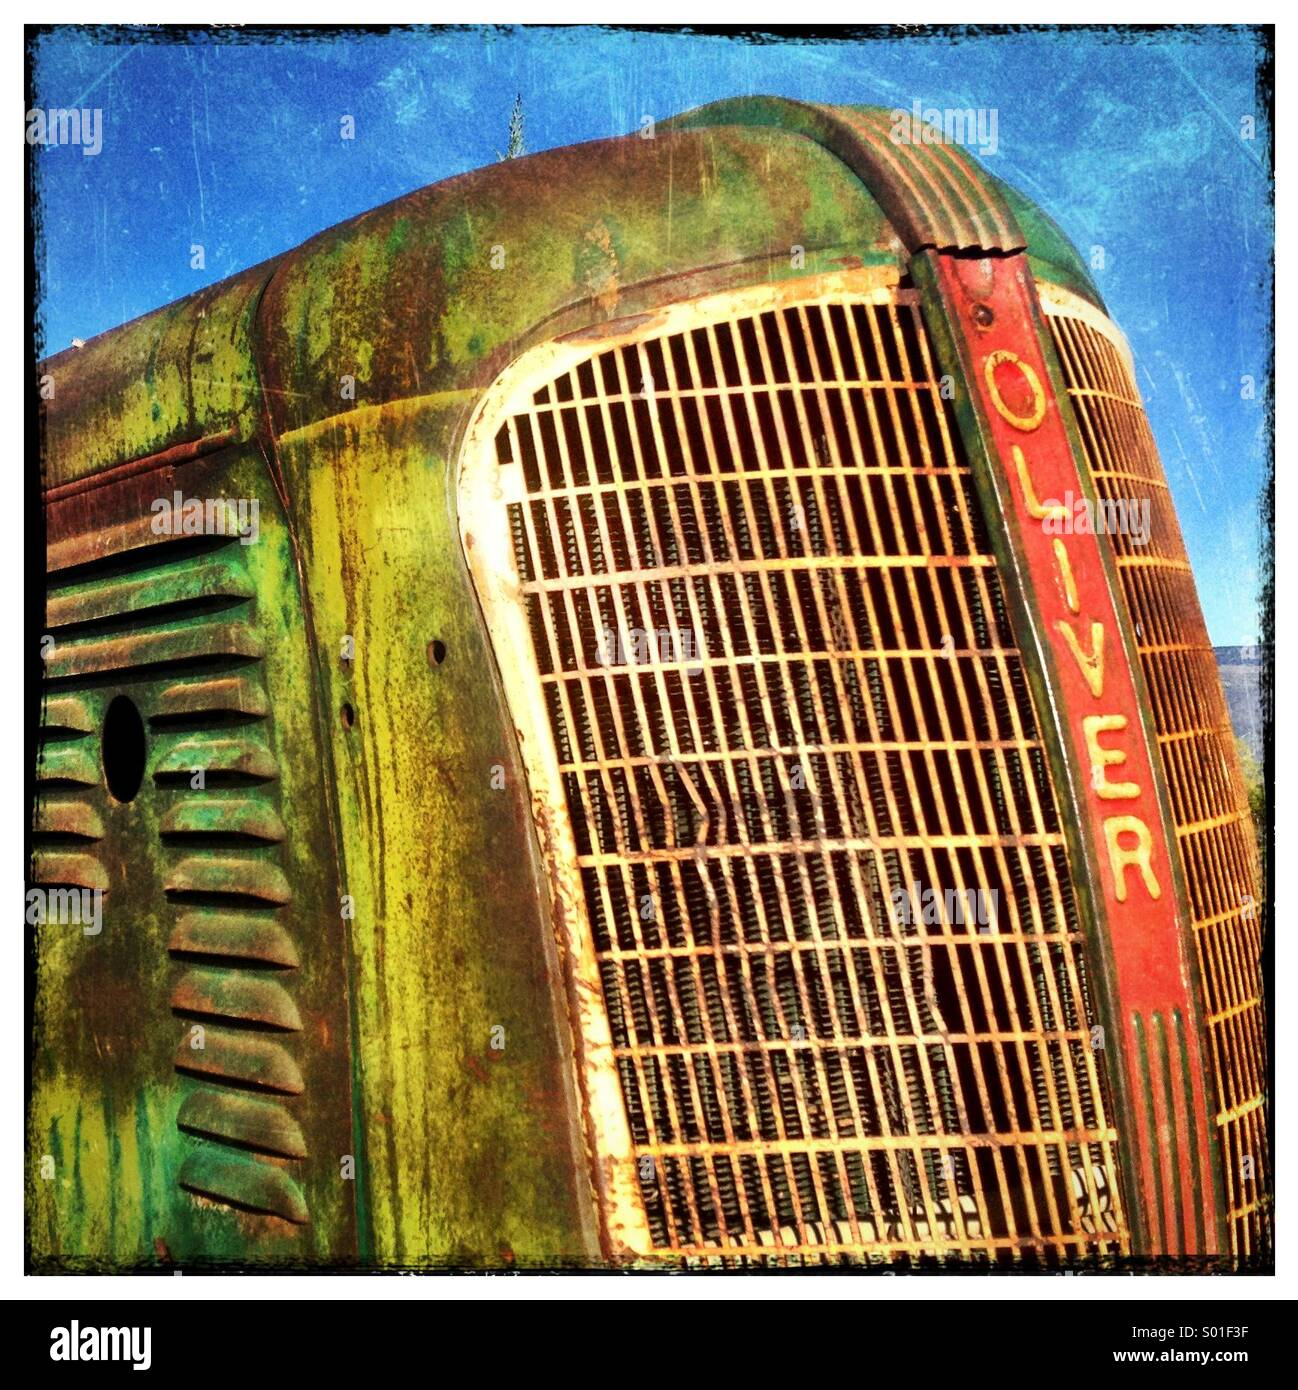 1940's Era Oliver Tractor Hood Detail with Grunge Texture Overlay - Stock Image